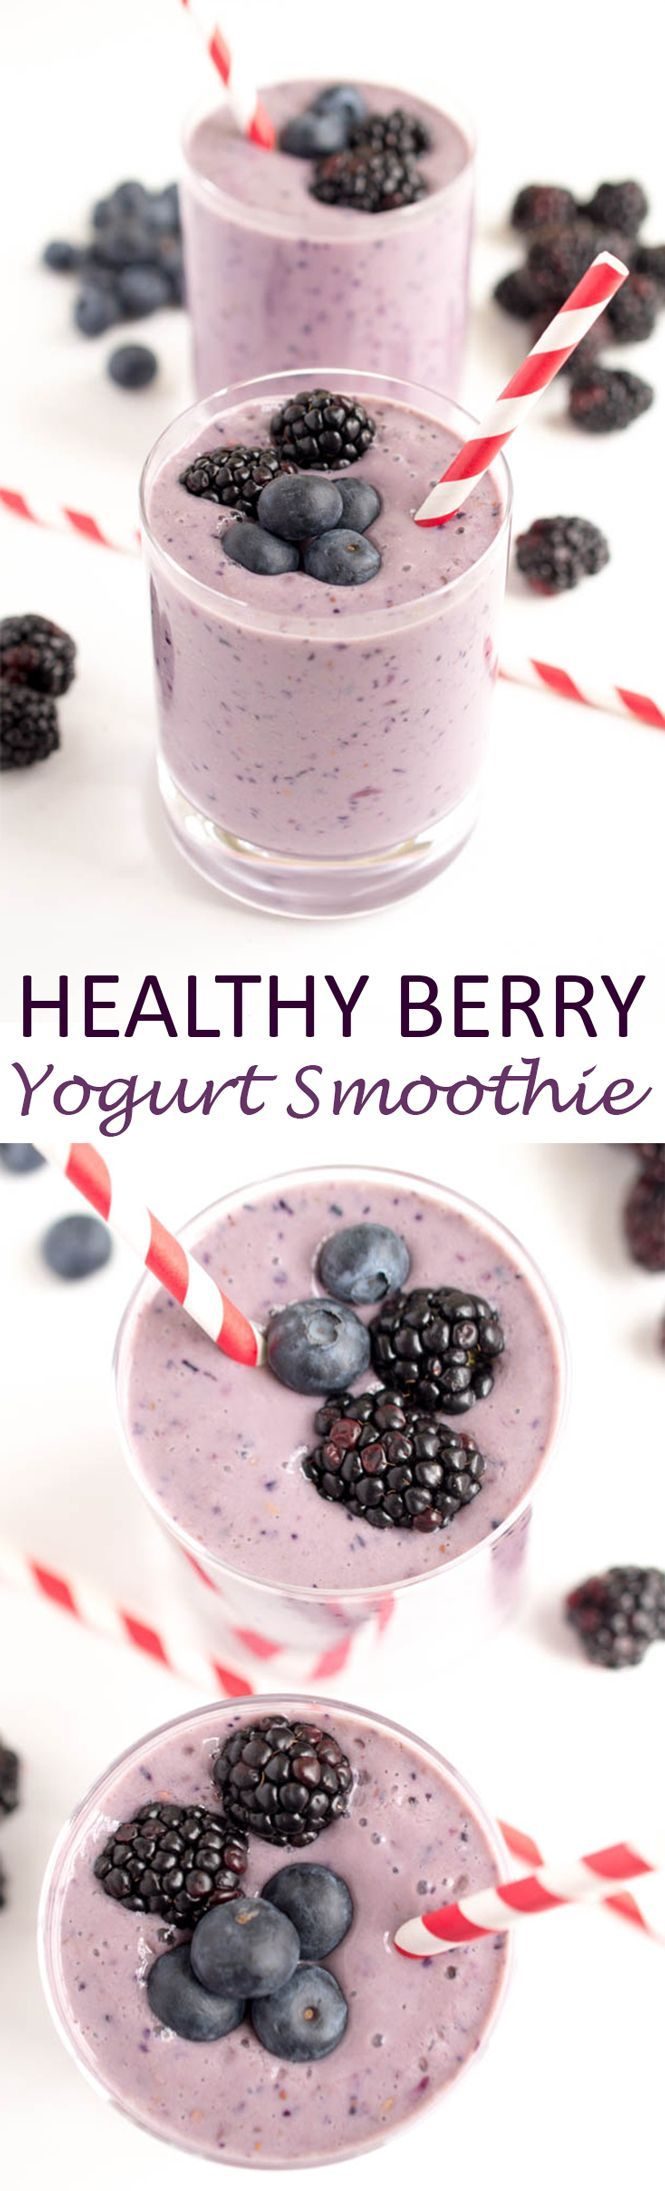 A super simple 5 ingredient Healthy Berry Yogurt Smoothie. Protein packed to keep you full throughout the day. A perfect on the go breakfast! | chefsavvy.com #recipe #breakfast #smoothie #fruit